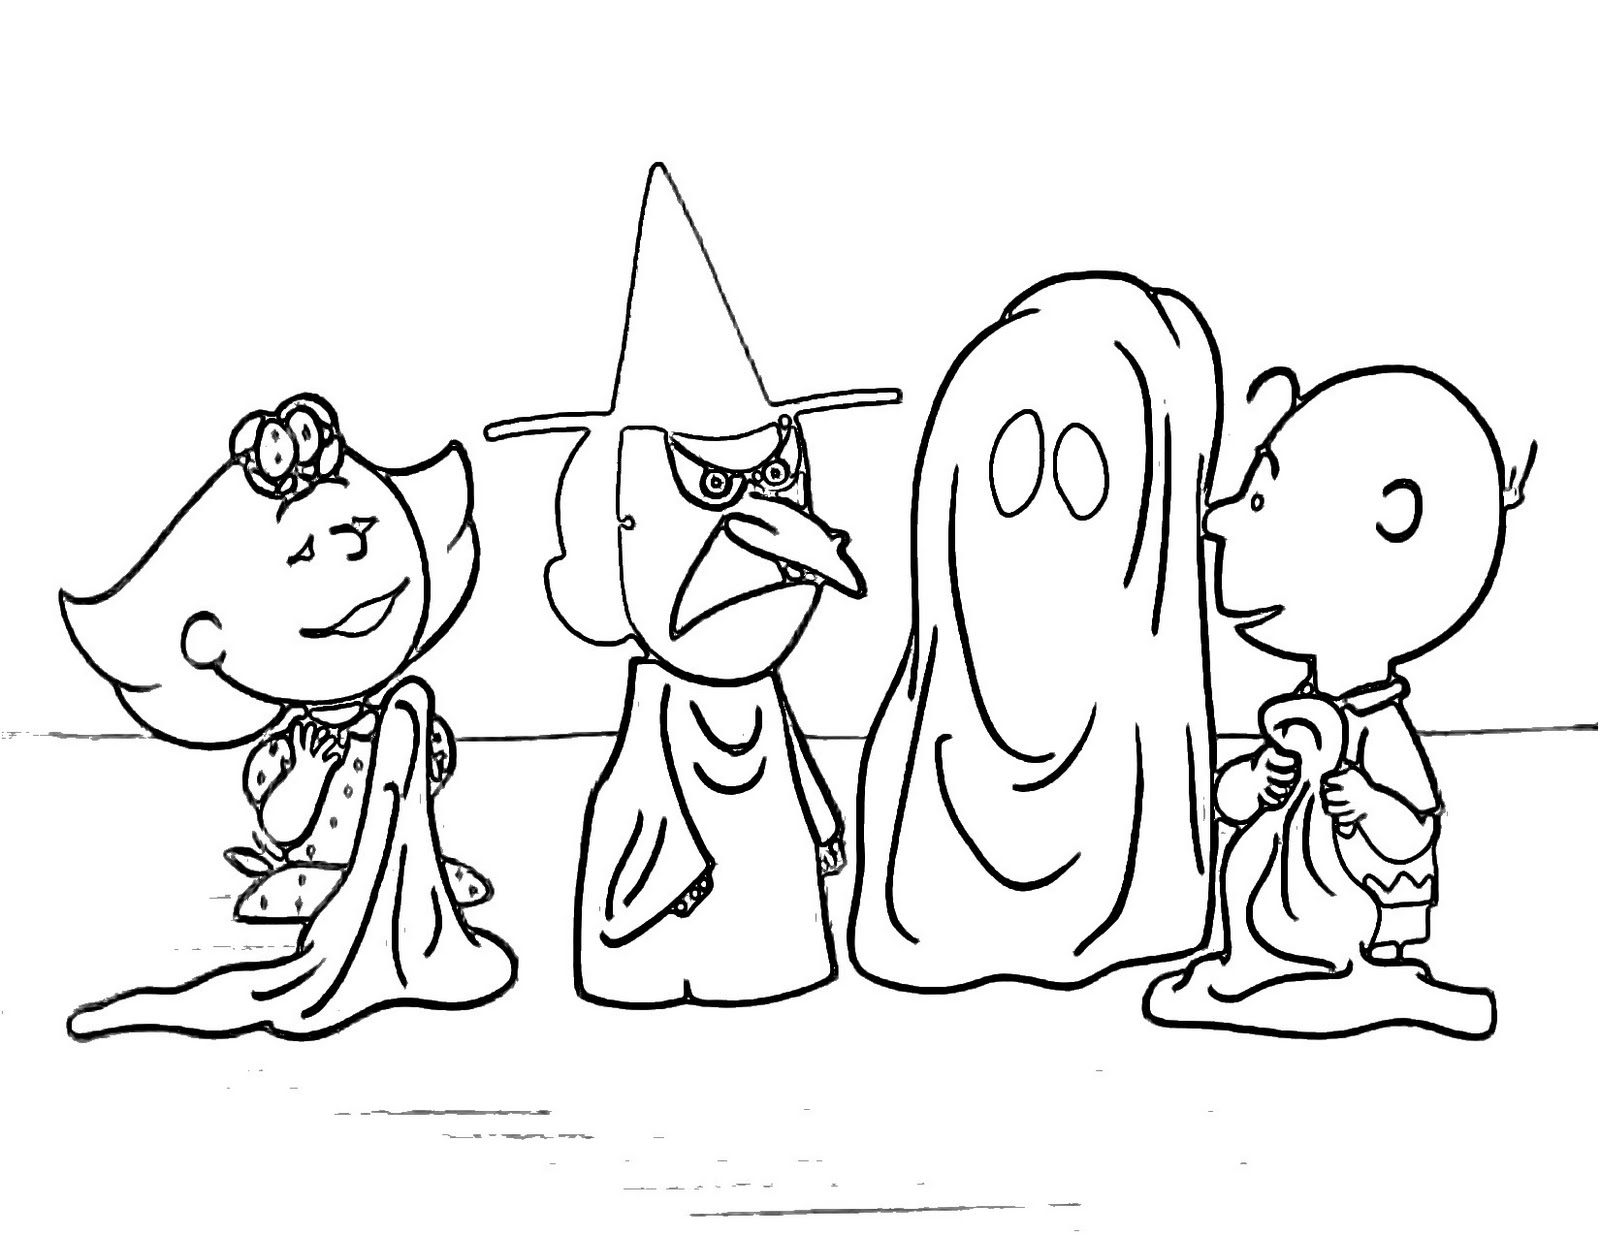 charlie brown and the great pumpkin coloring pages photo - 1